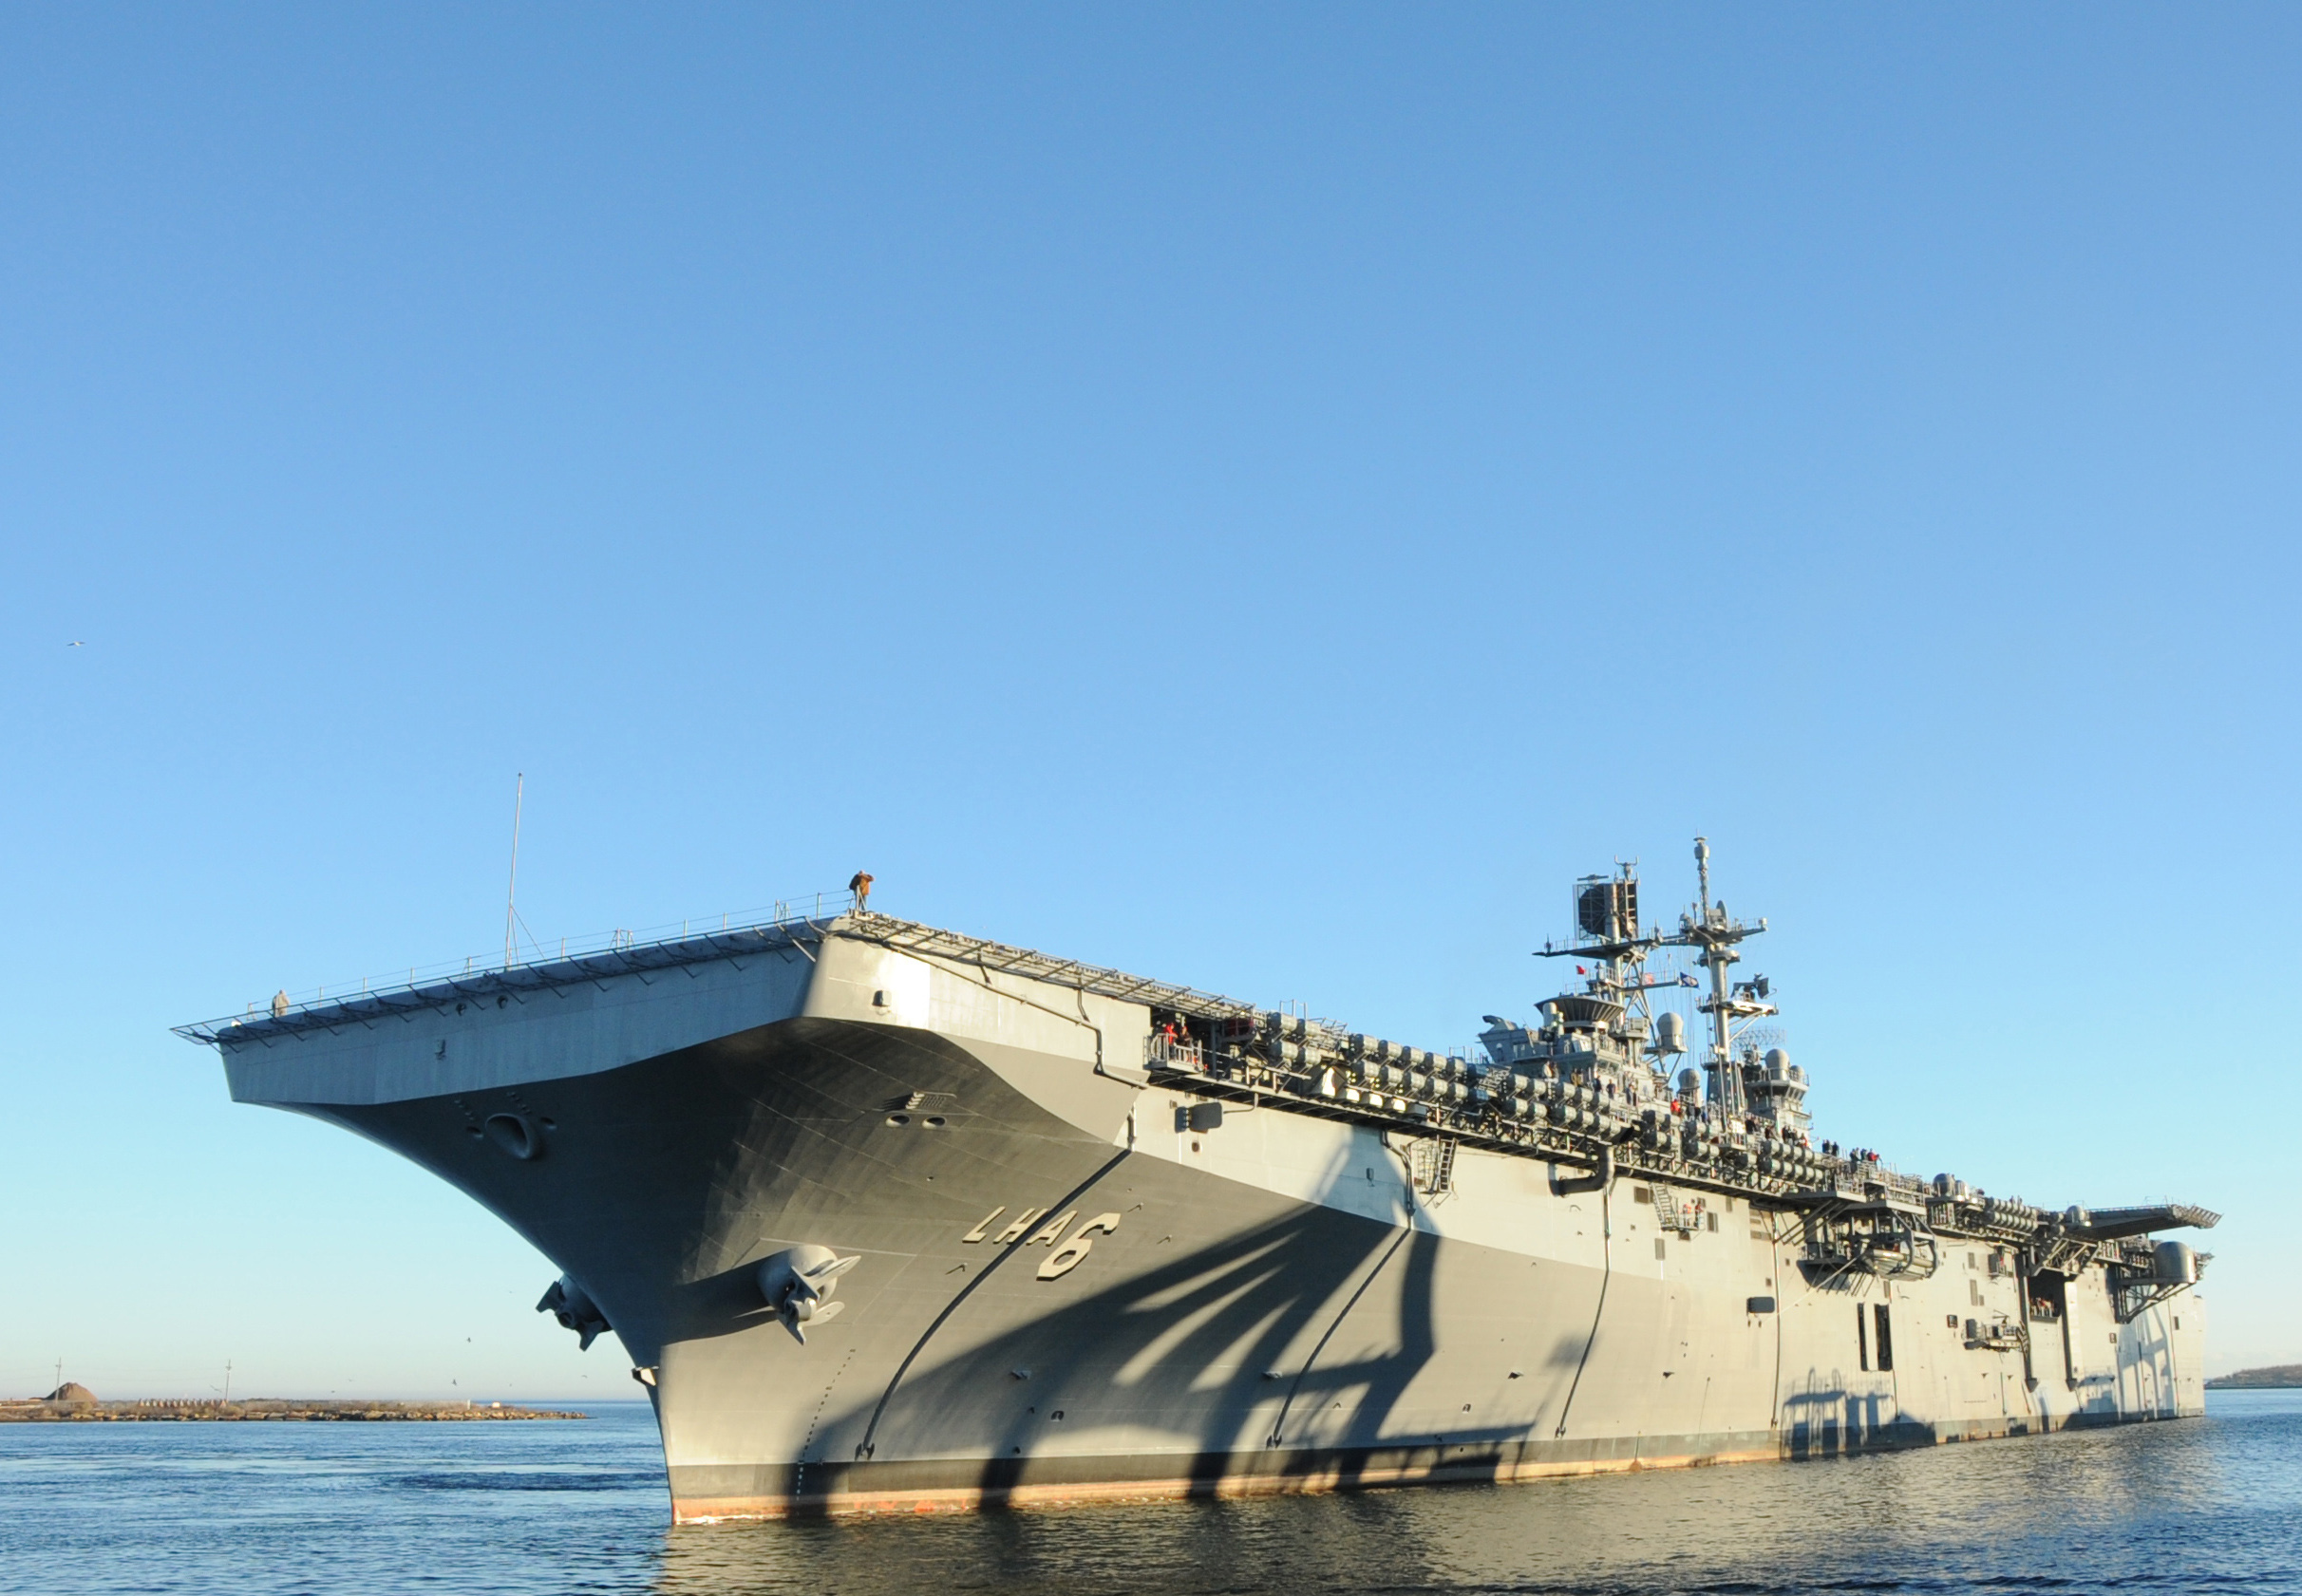 America (LHA-6) returns to Ingalls Shipyard from acceptance trials on Jan. 31, 2014. US Navy Photo